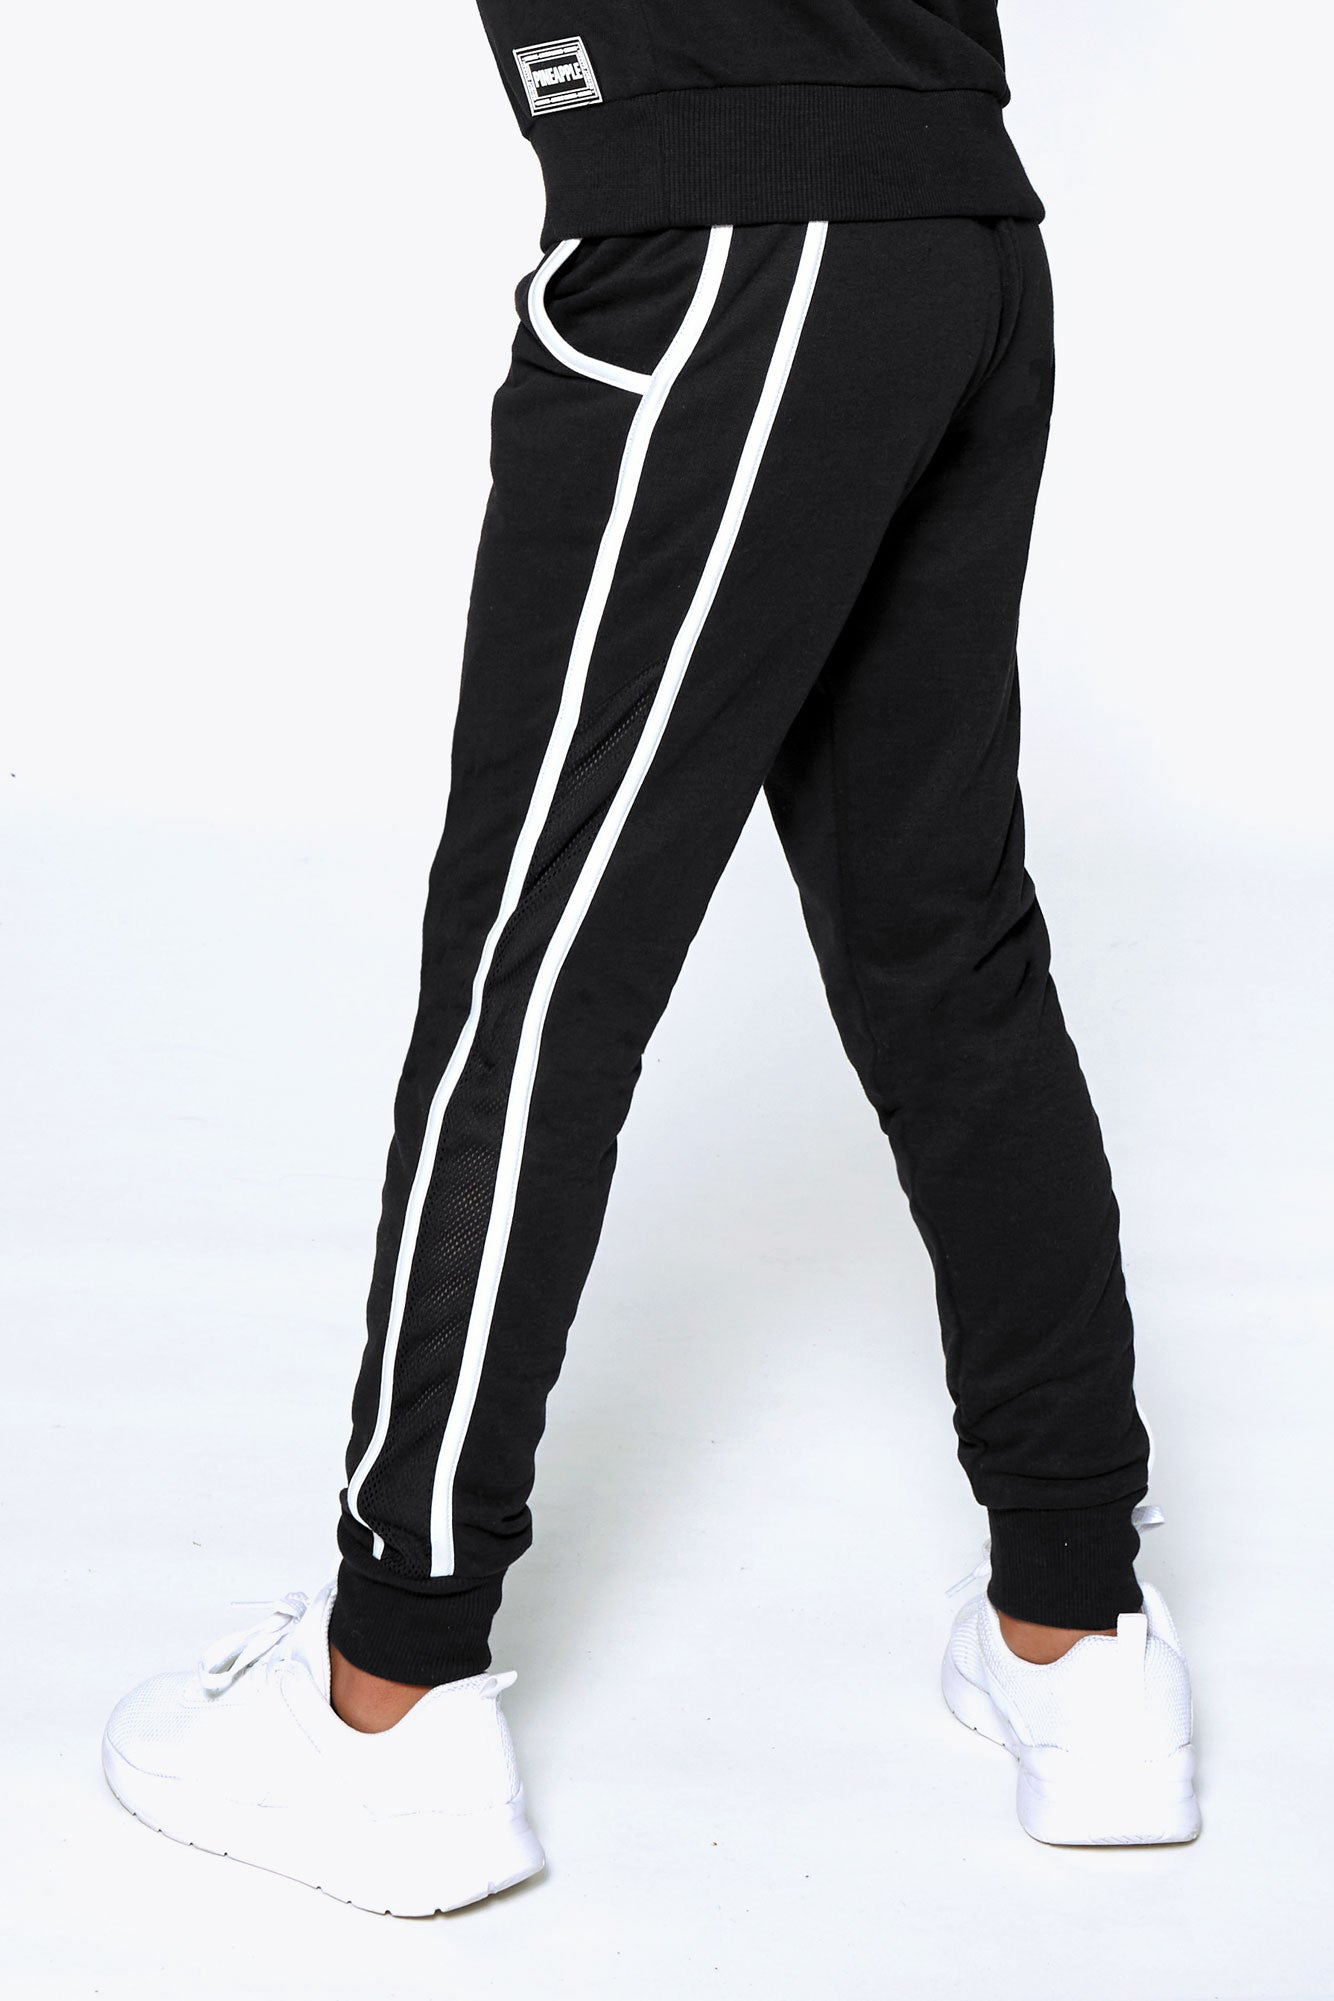 Pineapple Dance Girls' Black Piping Pocket Joggers PT1755CA1